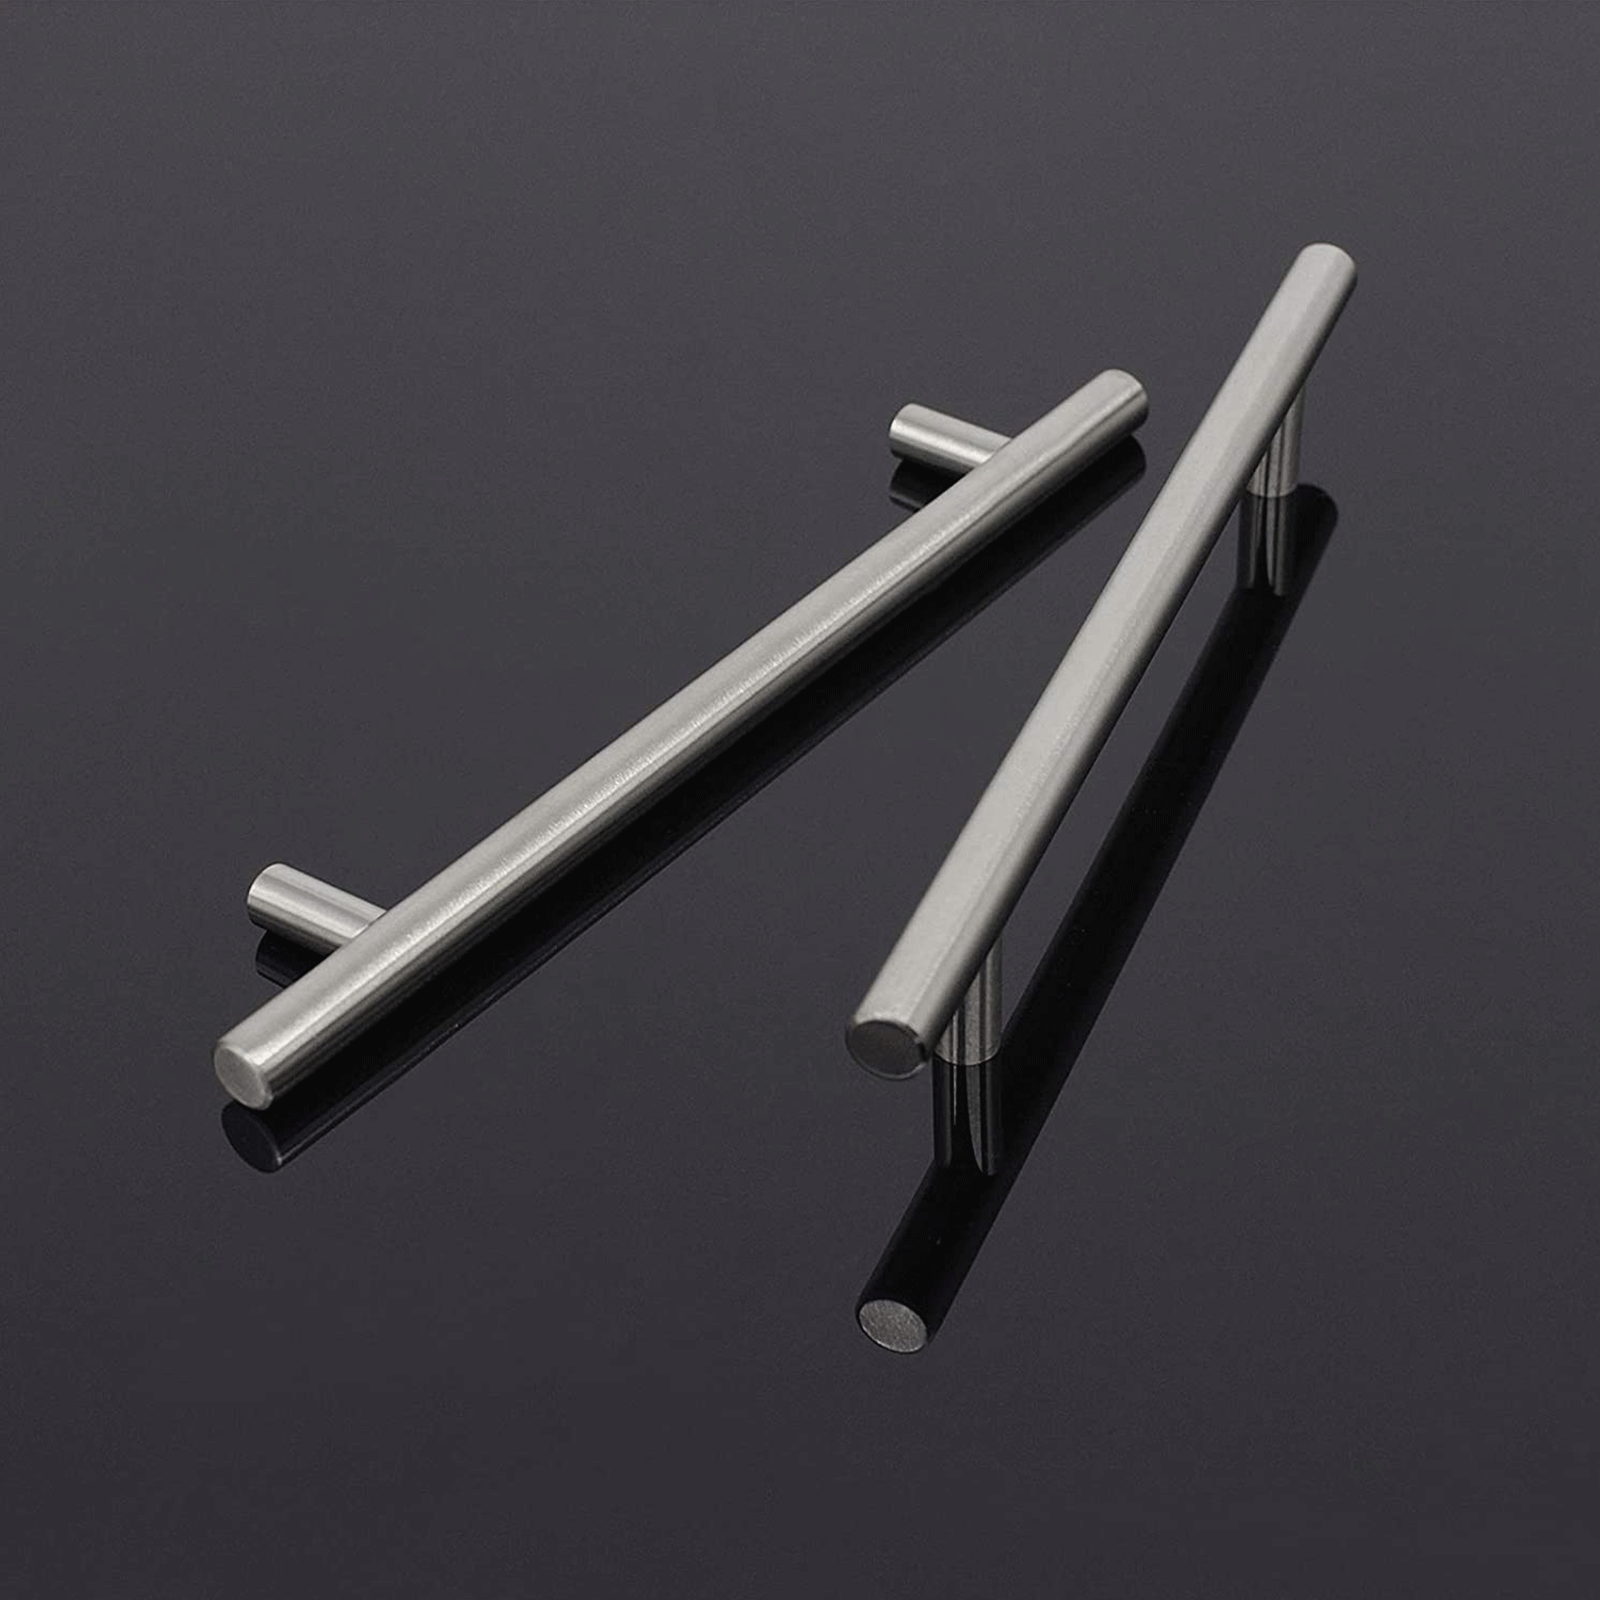 5Pack Euro T Bar Pulls for Cabinets, Brushed Stainless Steel Kitchen Handles 160mm 6 3/10inch PD201HSS160